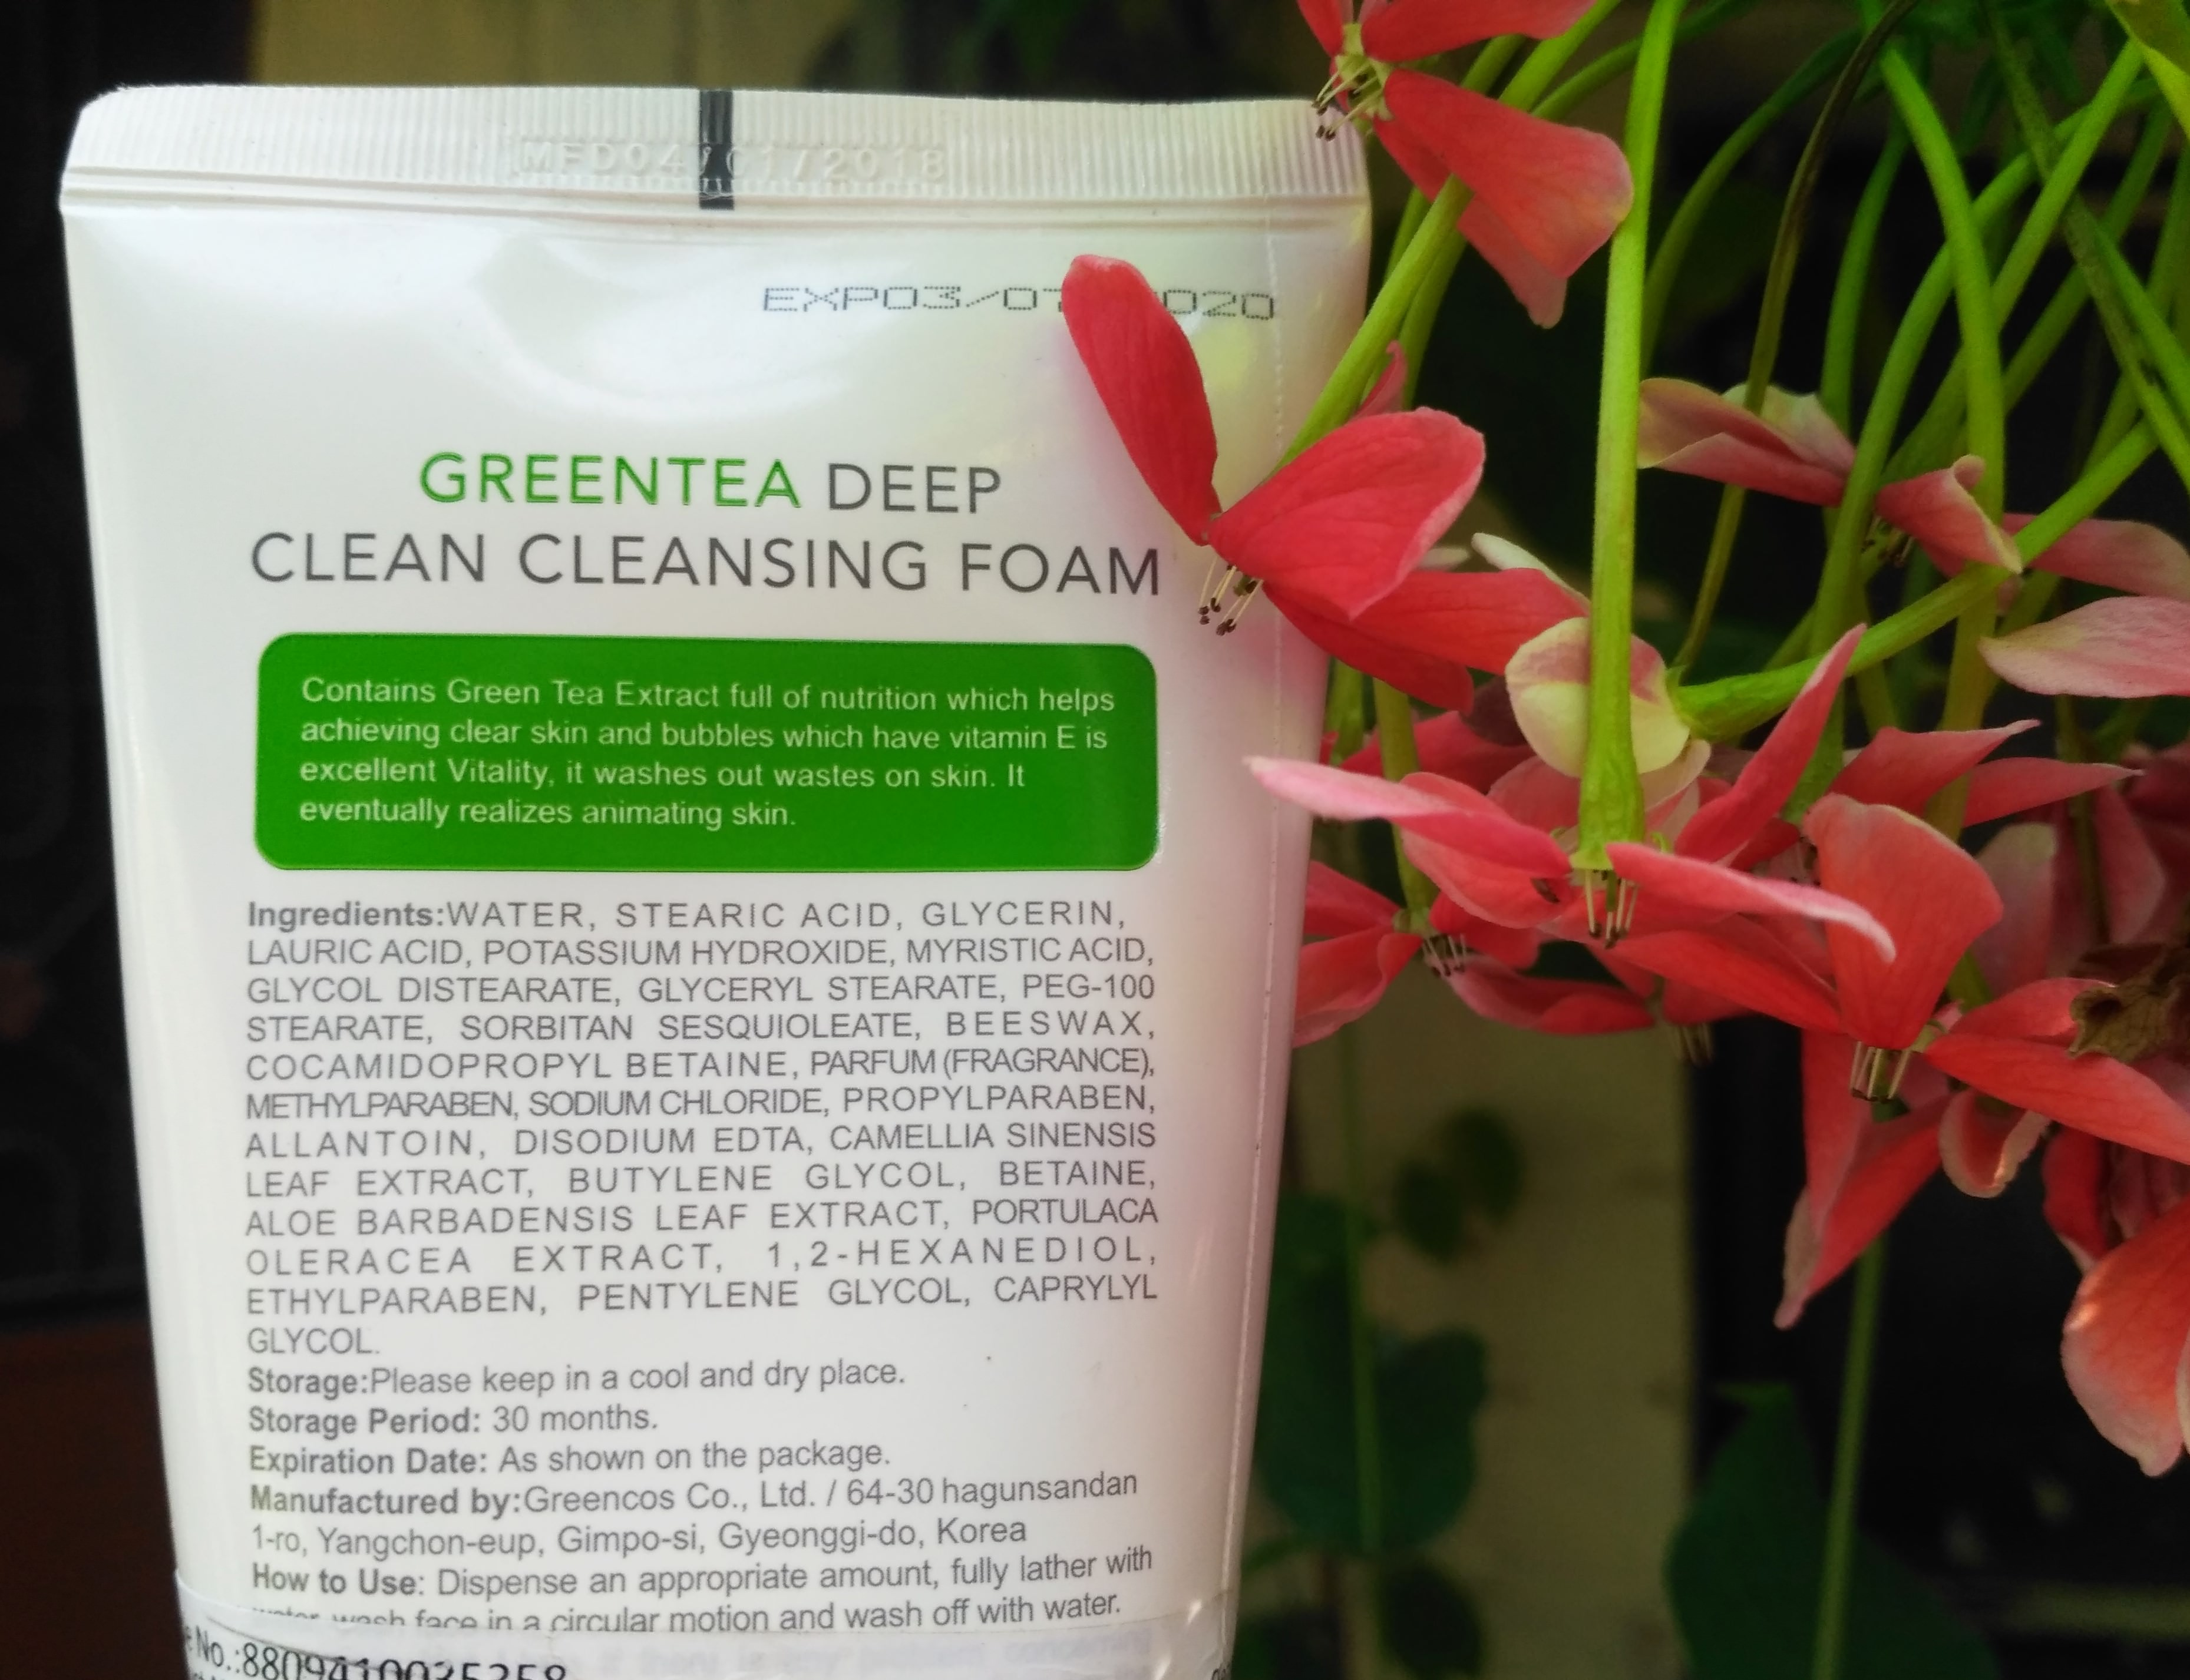 Miniso Green Tea Deep Cleansing Foam Face Wash Review